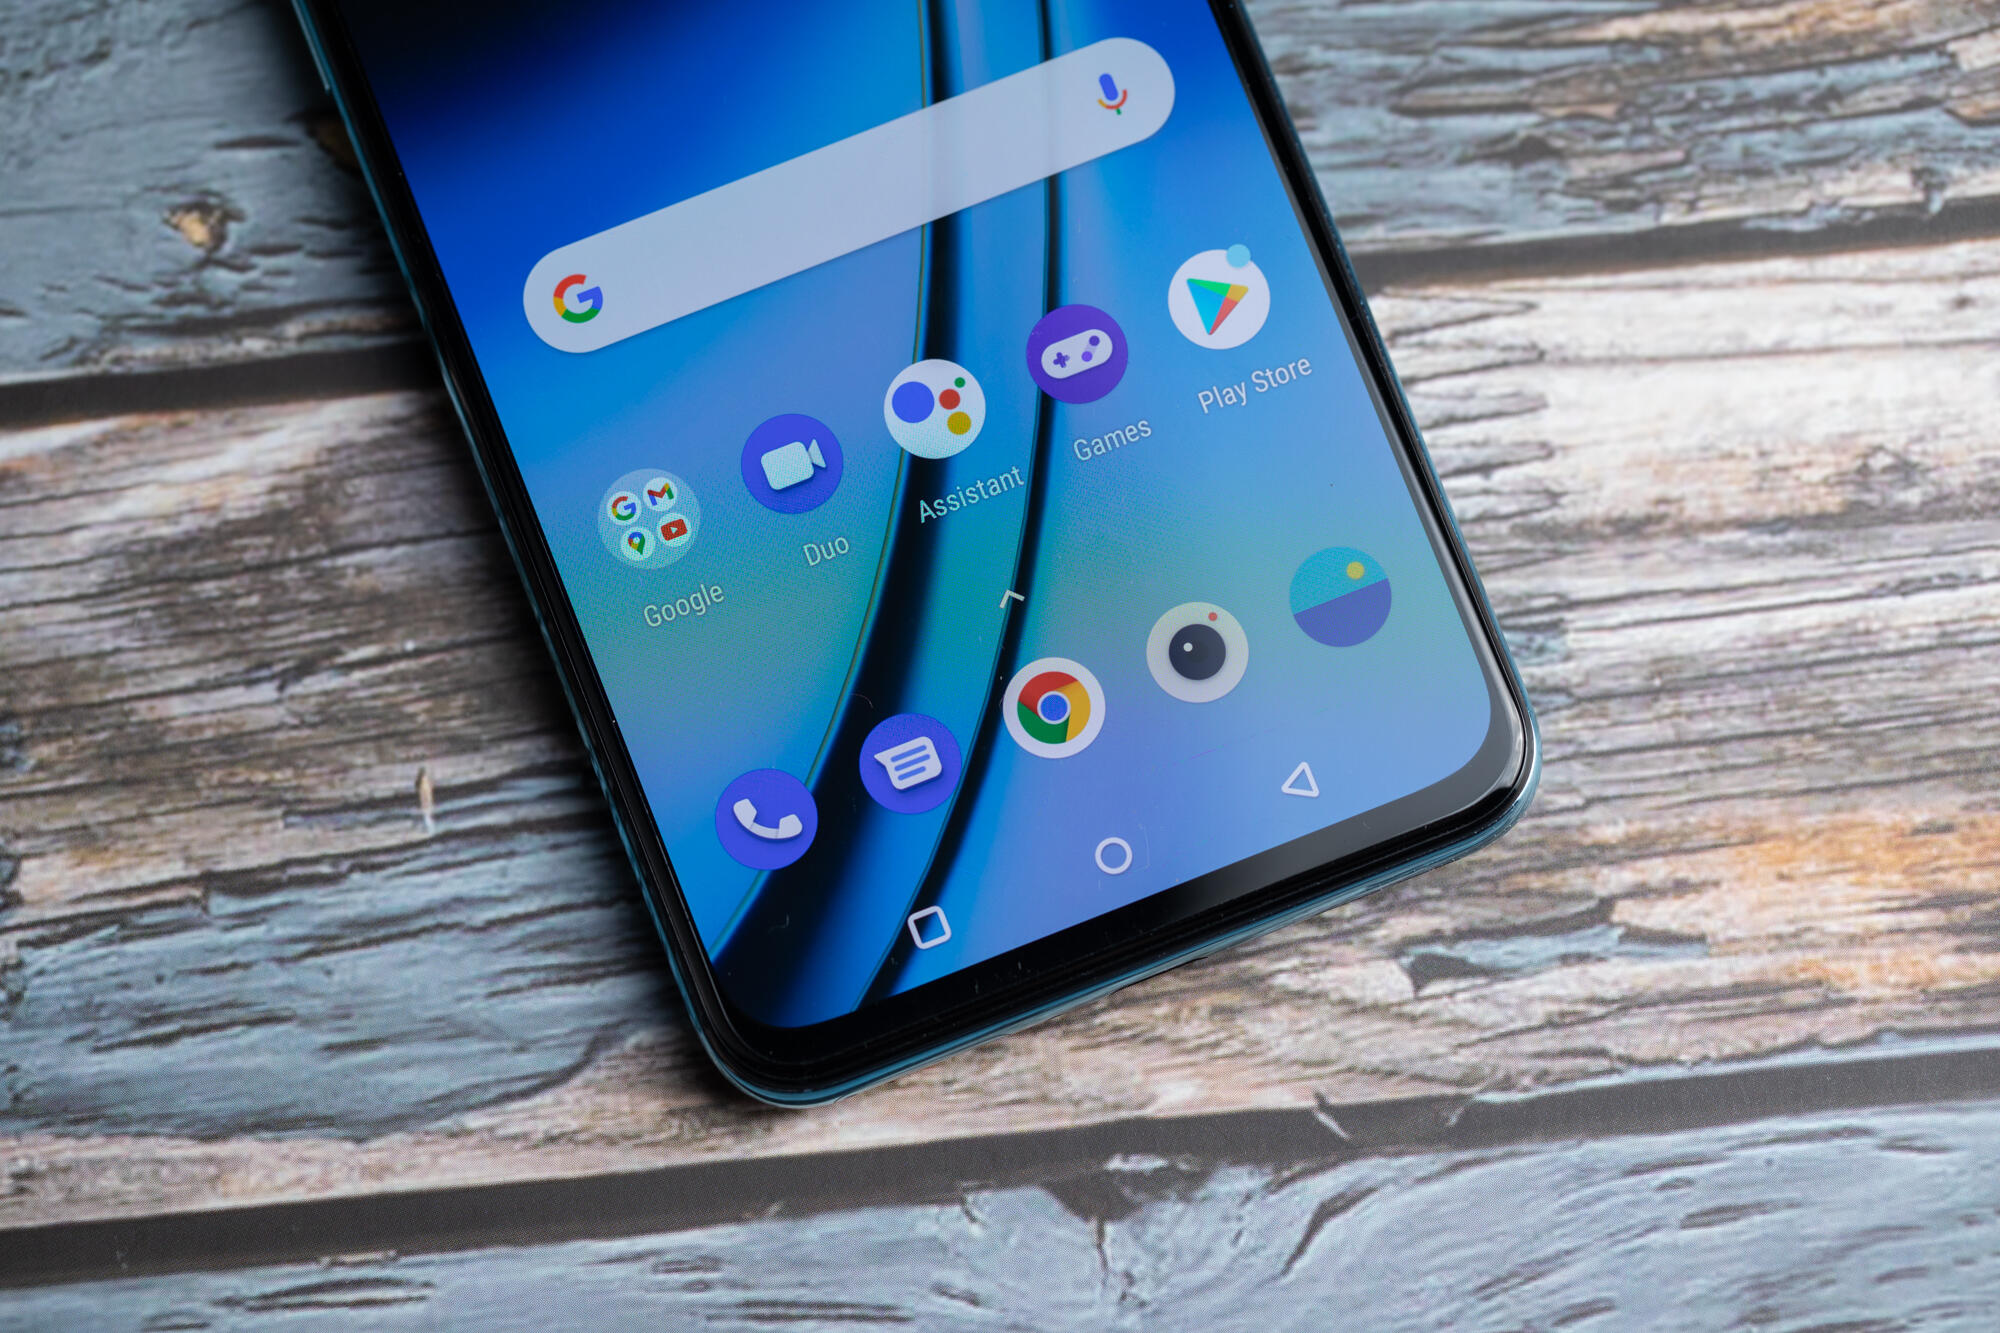 oneplus-nord-2-cnet-hoyle-6